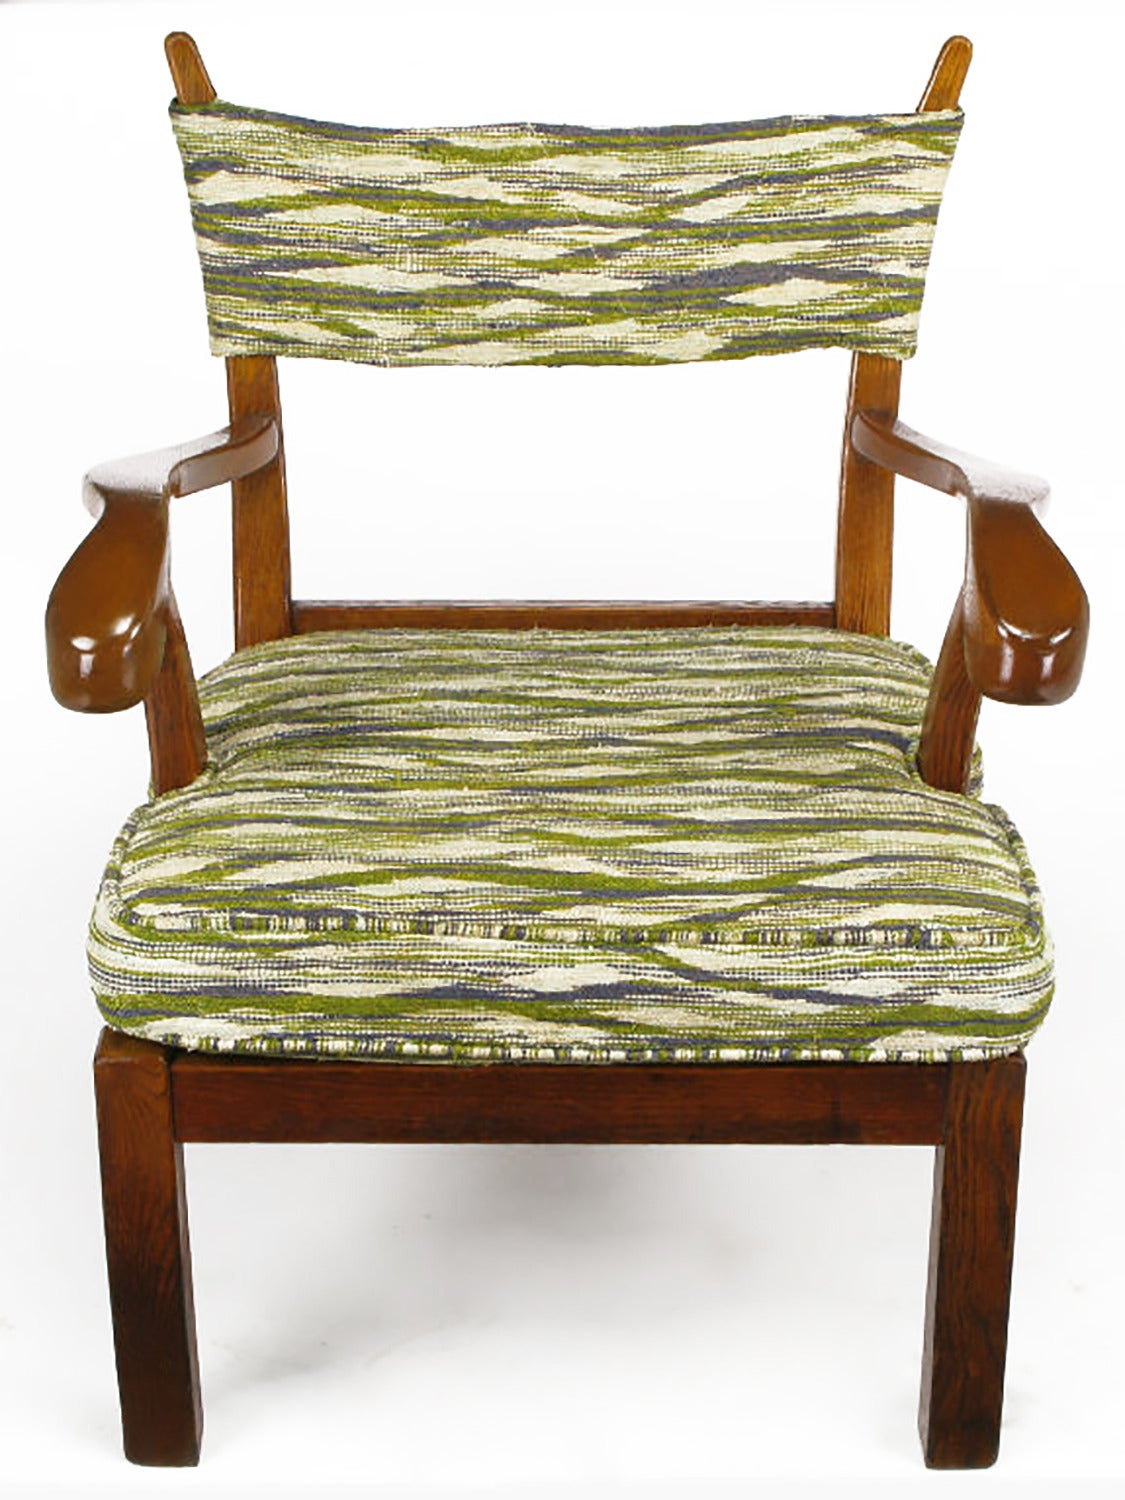 Unusual Studio Carved Oak Armchair in Liebes Style Fabric For Sale 2